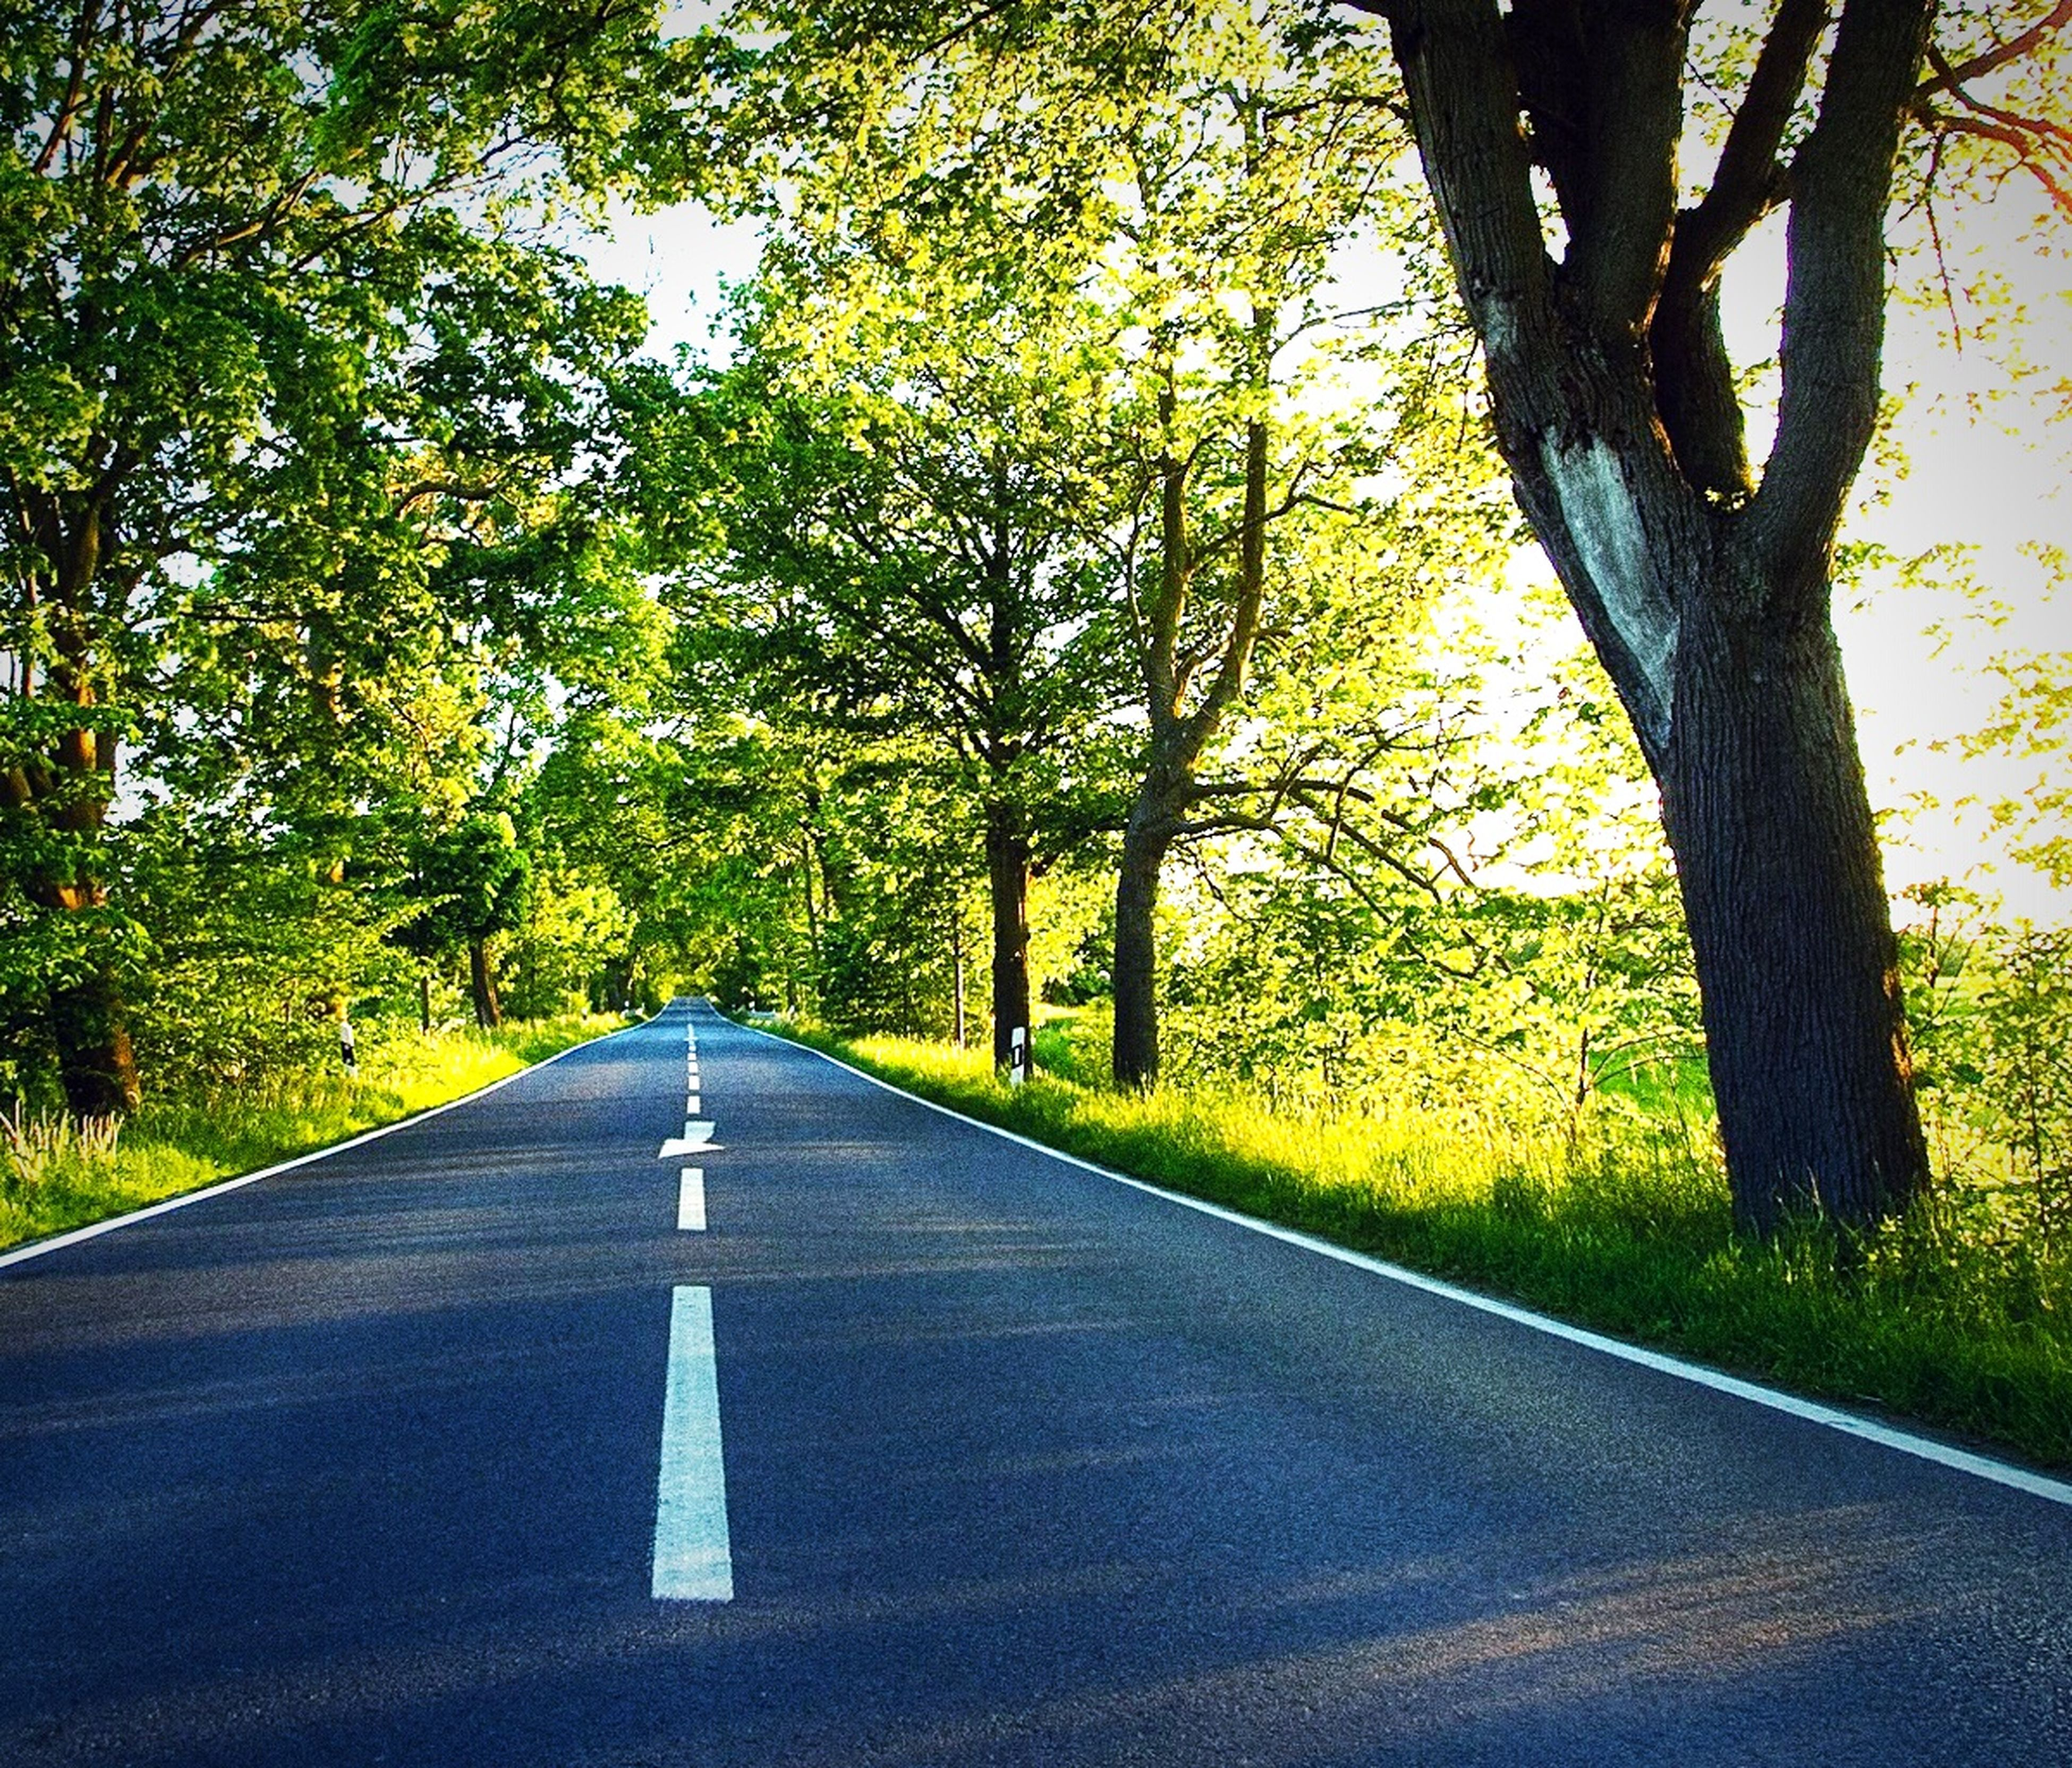 tree, the way forward, road, transportation, road marking, diminishing perspective, vanishing point, empty road, country road, tranquility, asphalt, road sign, street, empty, nature, growth, branch, no people, treelined, tranquil scene